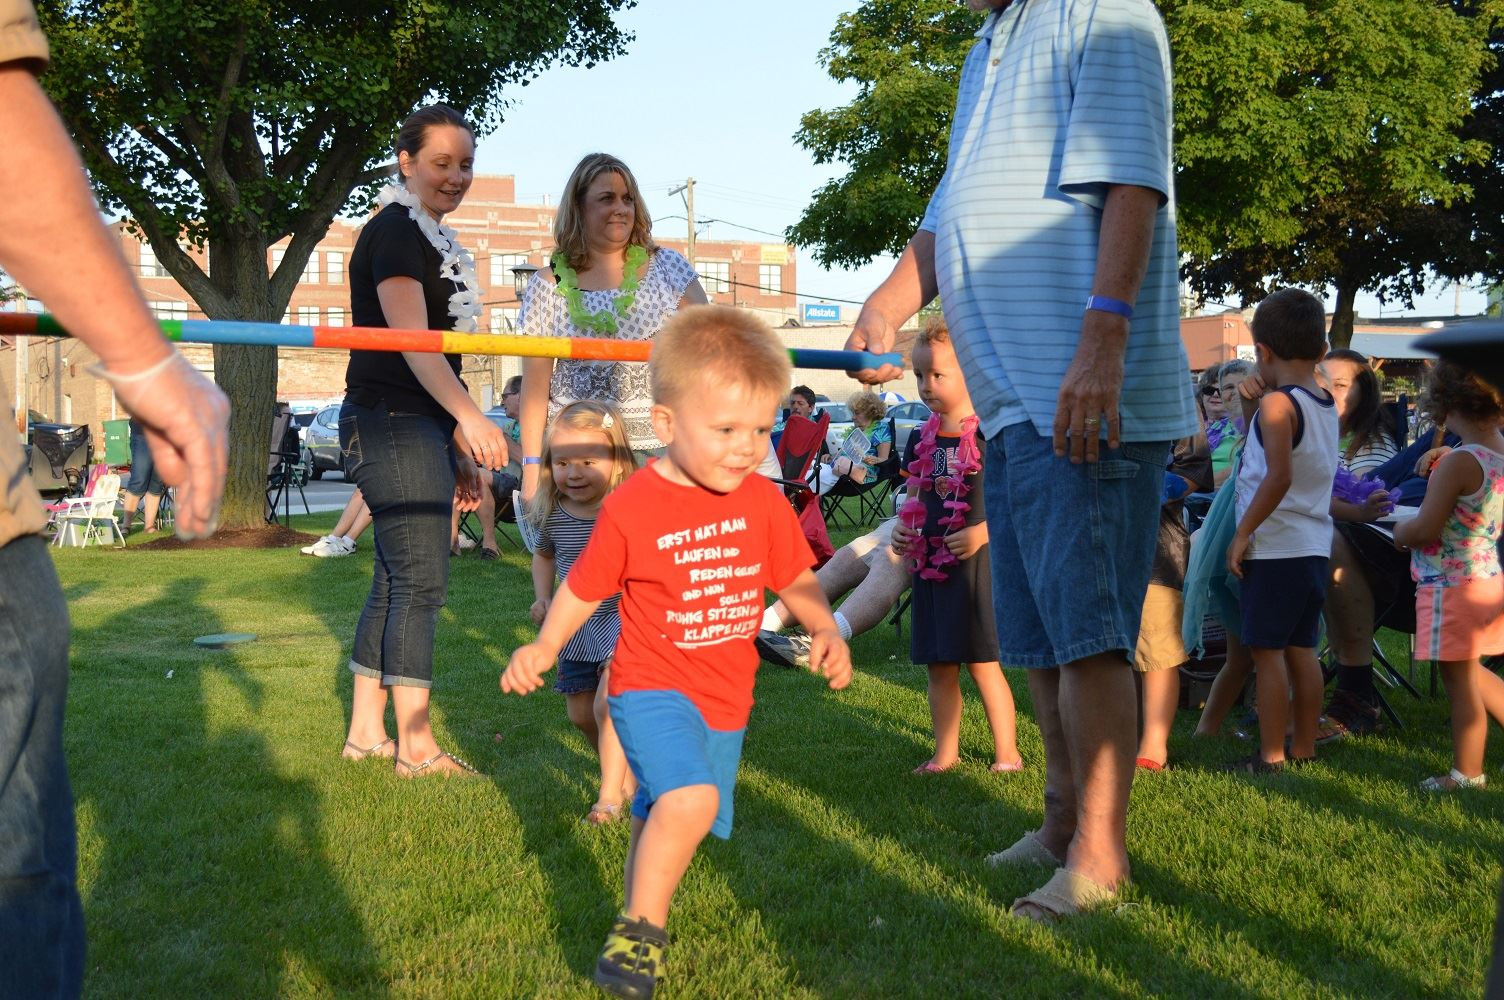 Kids limbo during the Mr. Meyers concert at Cortesi Veterans Memorial Park on Aug. 4, 2016.